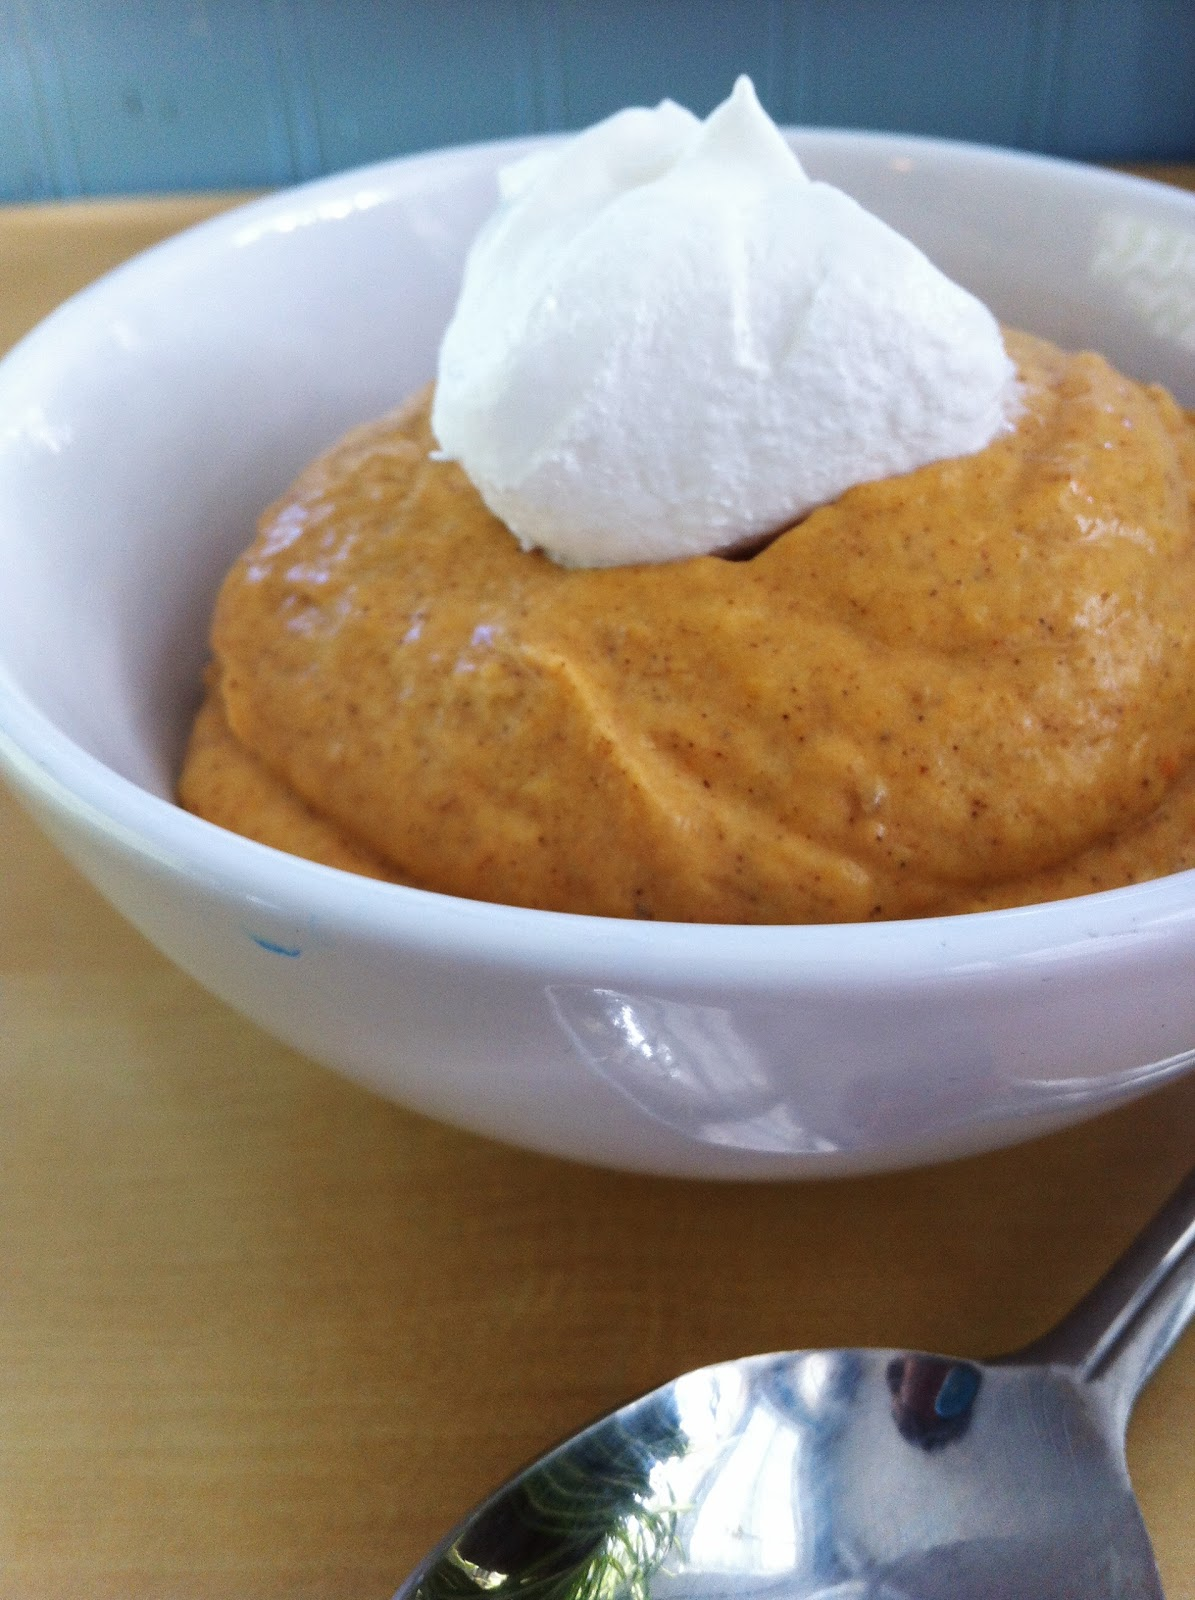 The Art of Comfort Baking: Pumpkin Pie Mousse